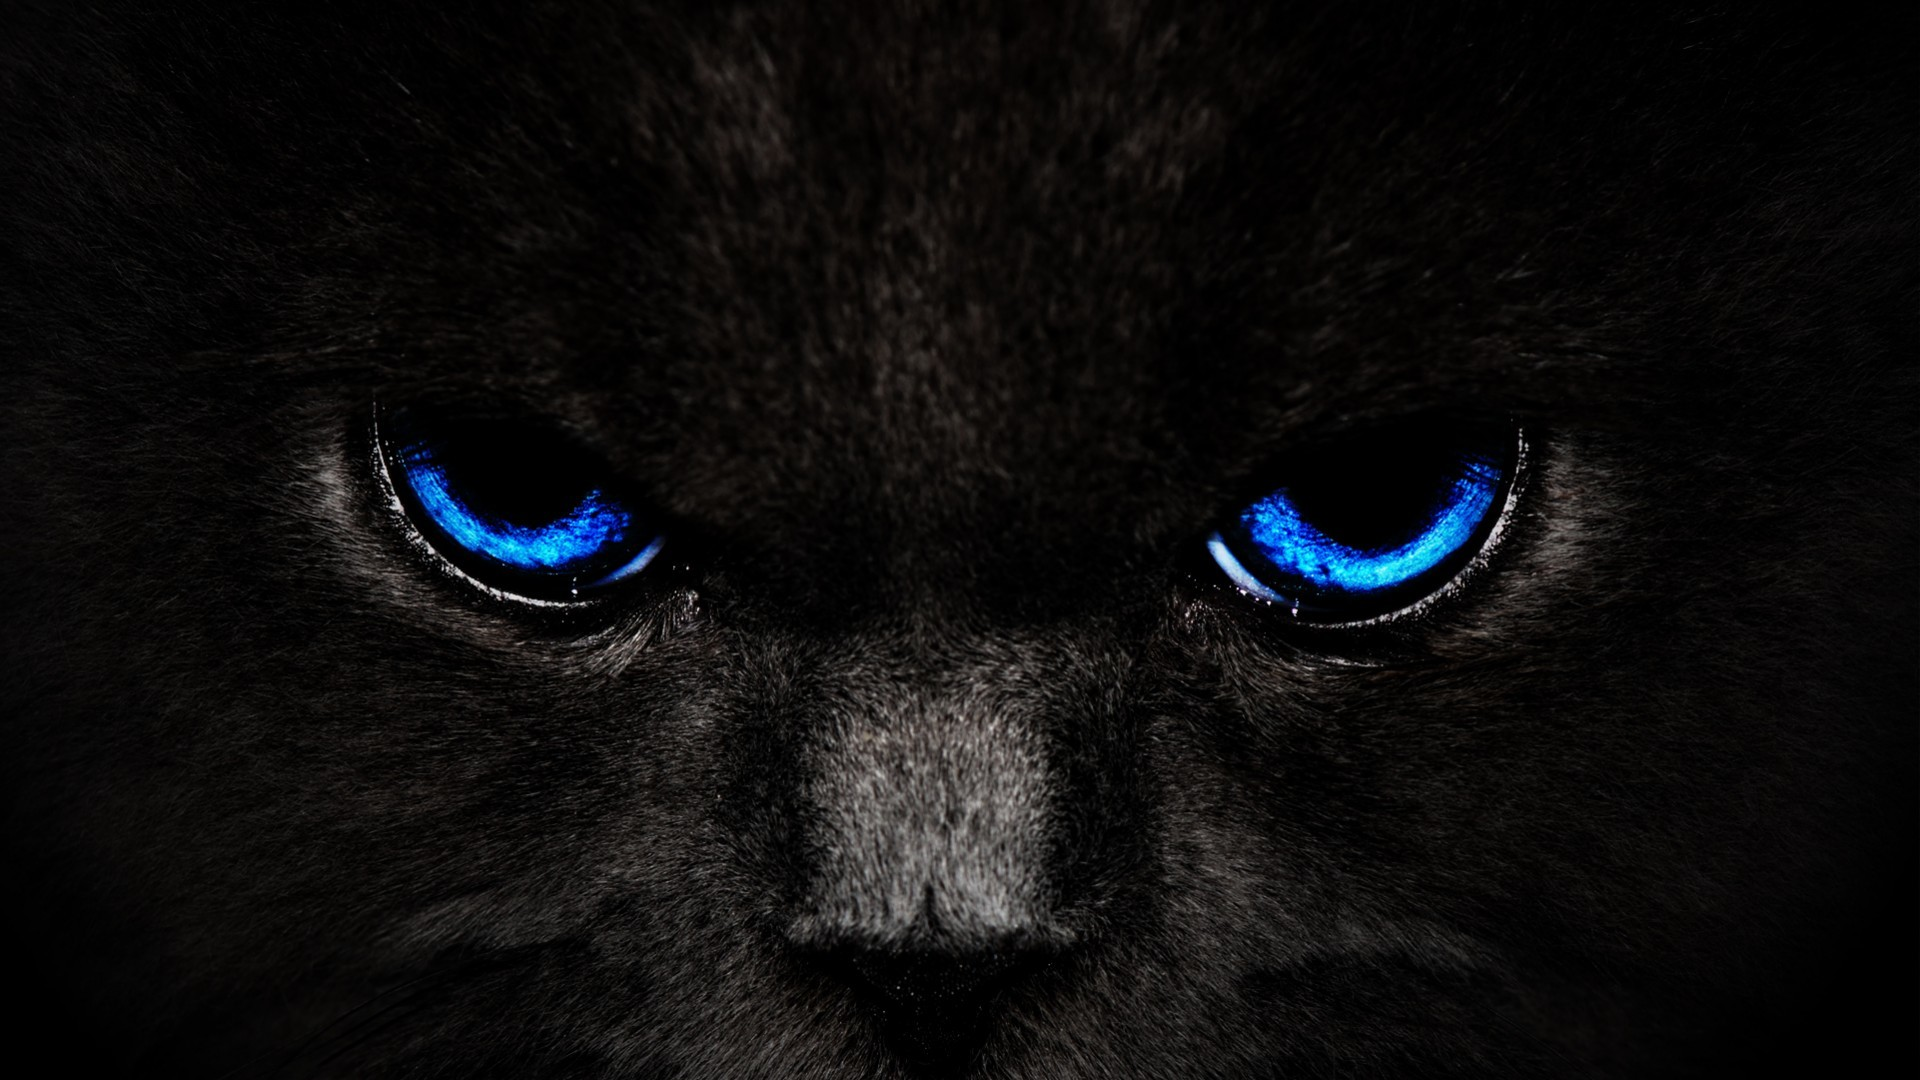 Best Looking Cars Wallpapers Black Panther Blue Eyes Wallpaper 60 Images